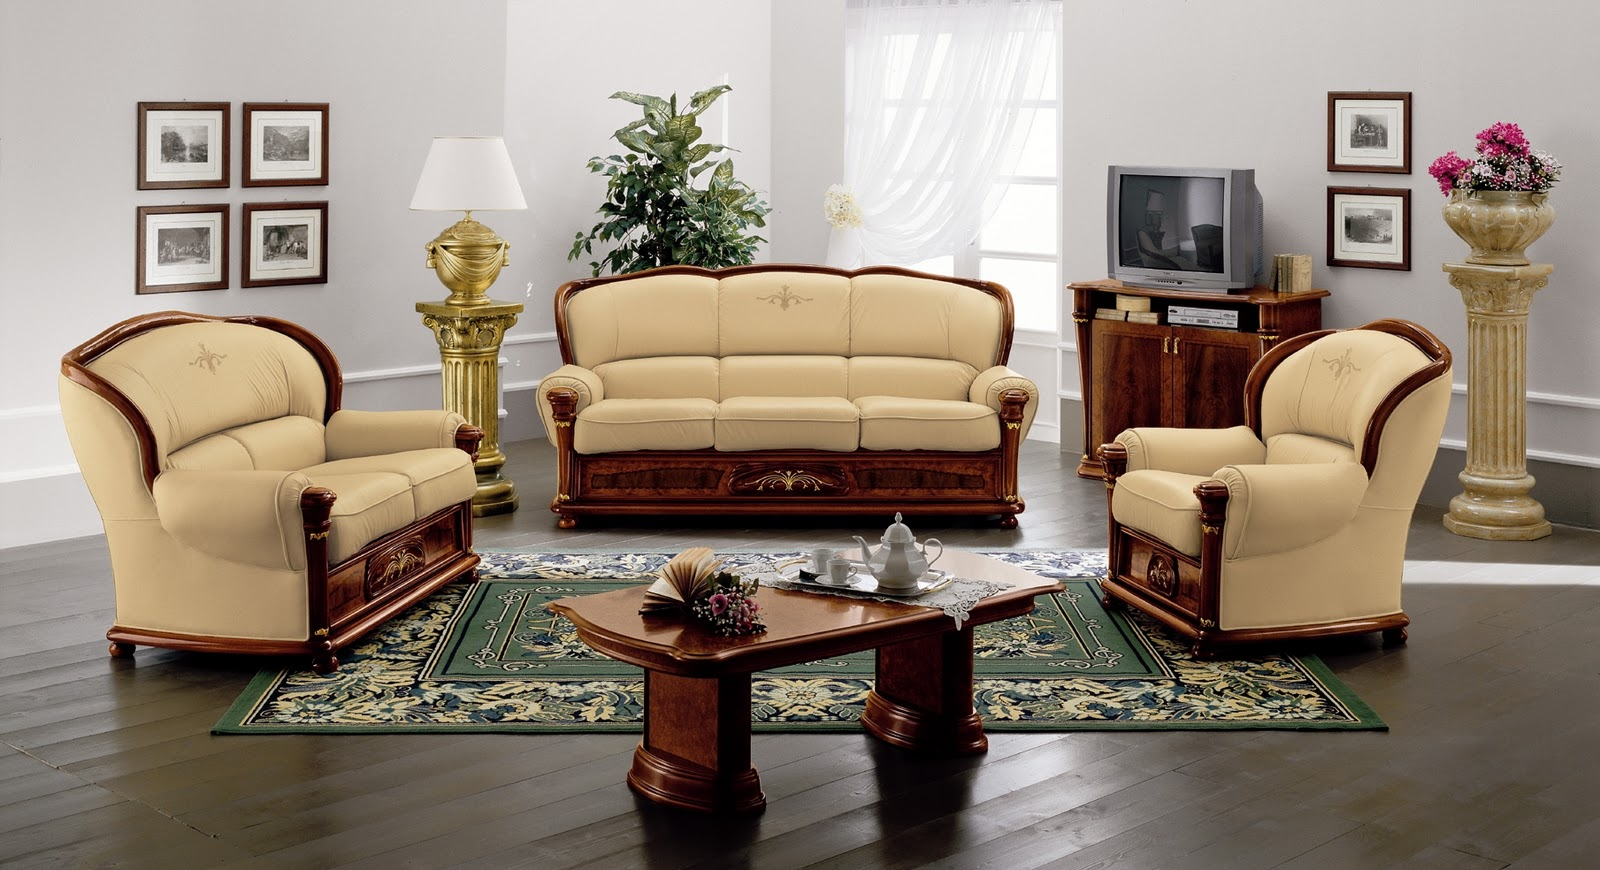 Sofa Set, Drawing room Furniture, Center Table